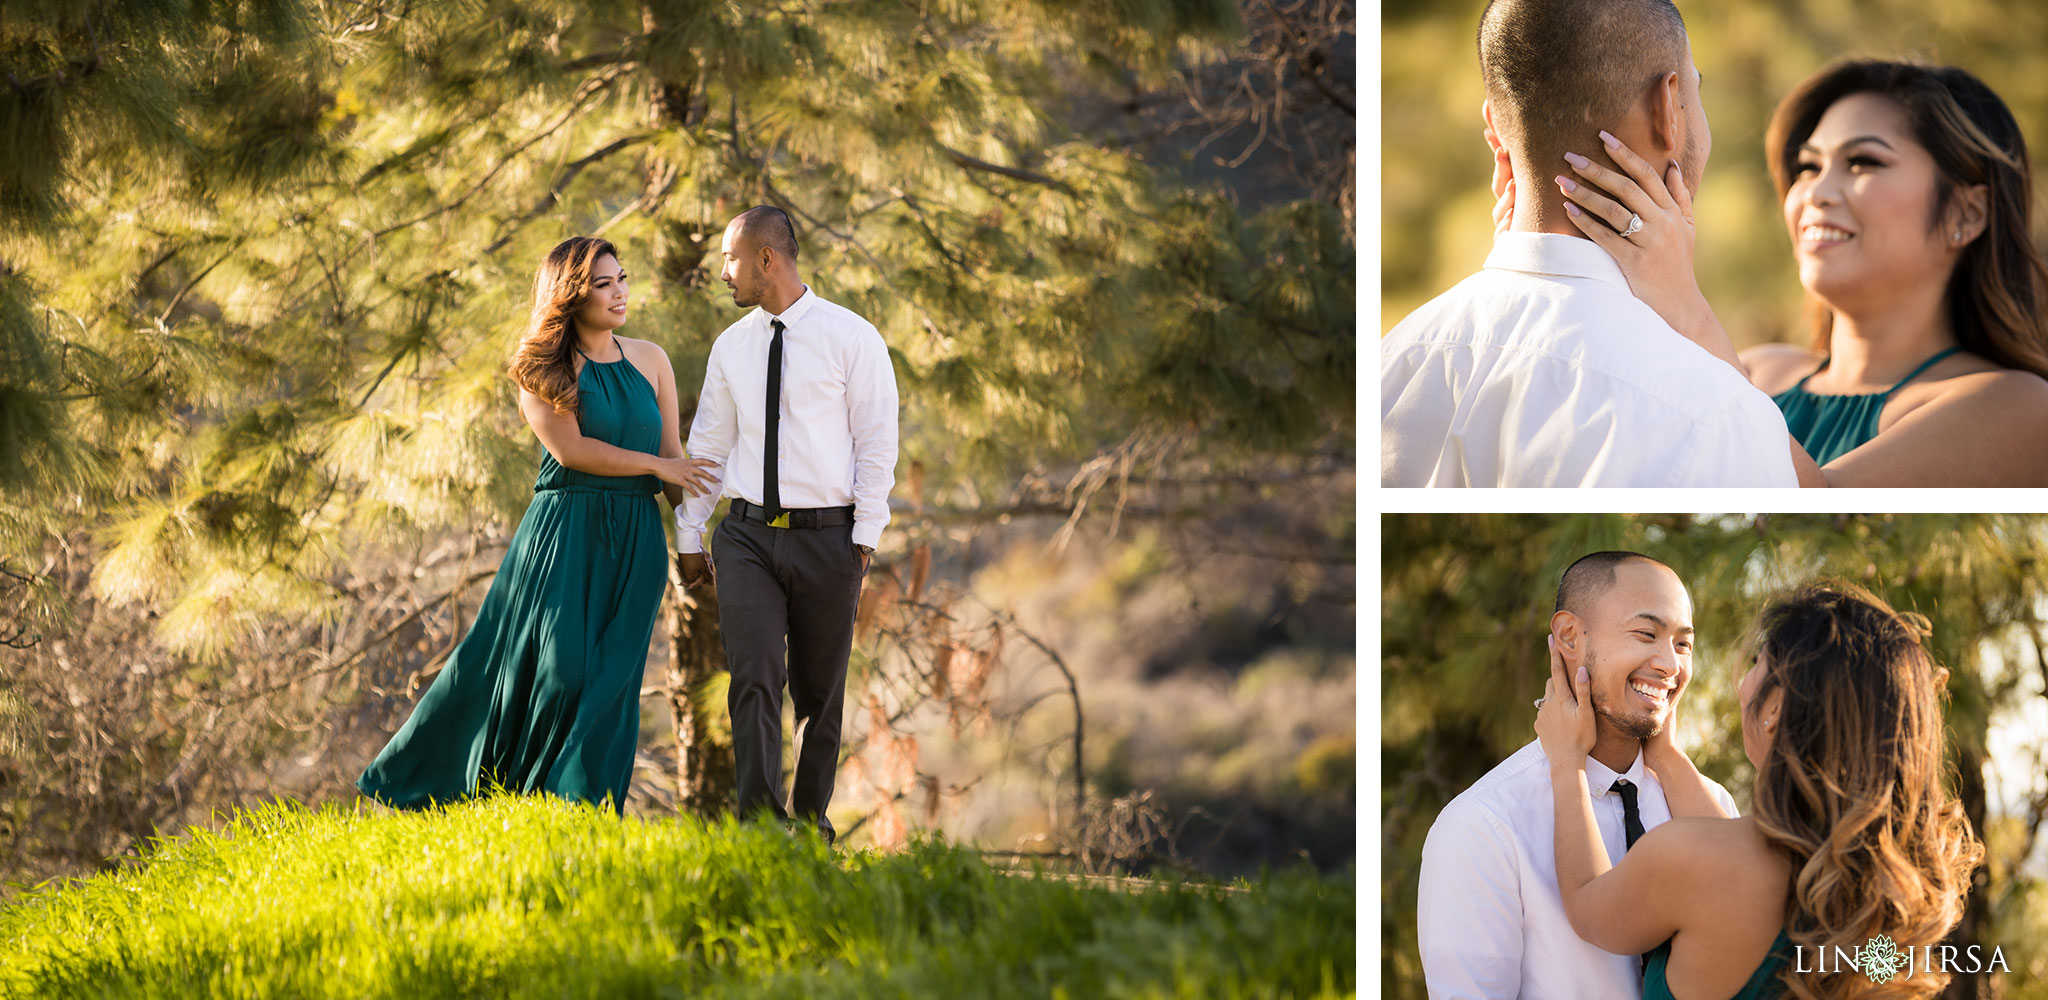 04 griffith park los angeles engagement photography